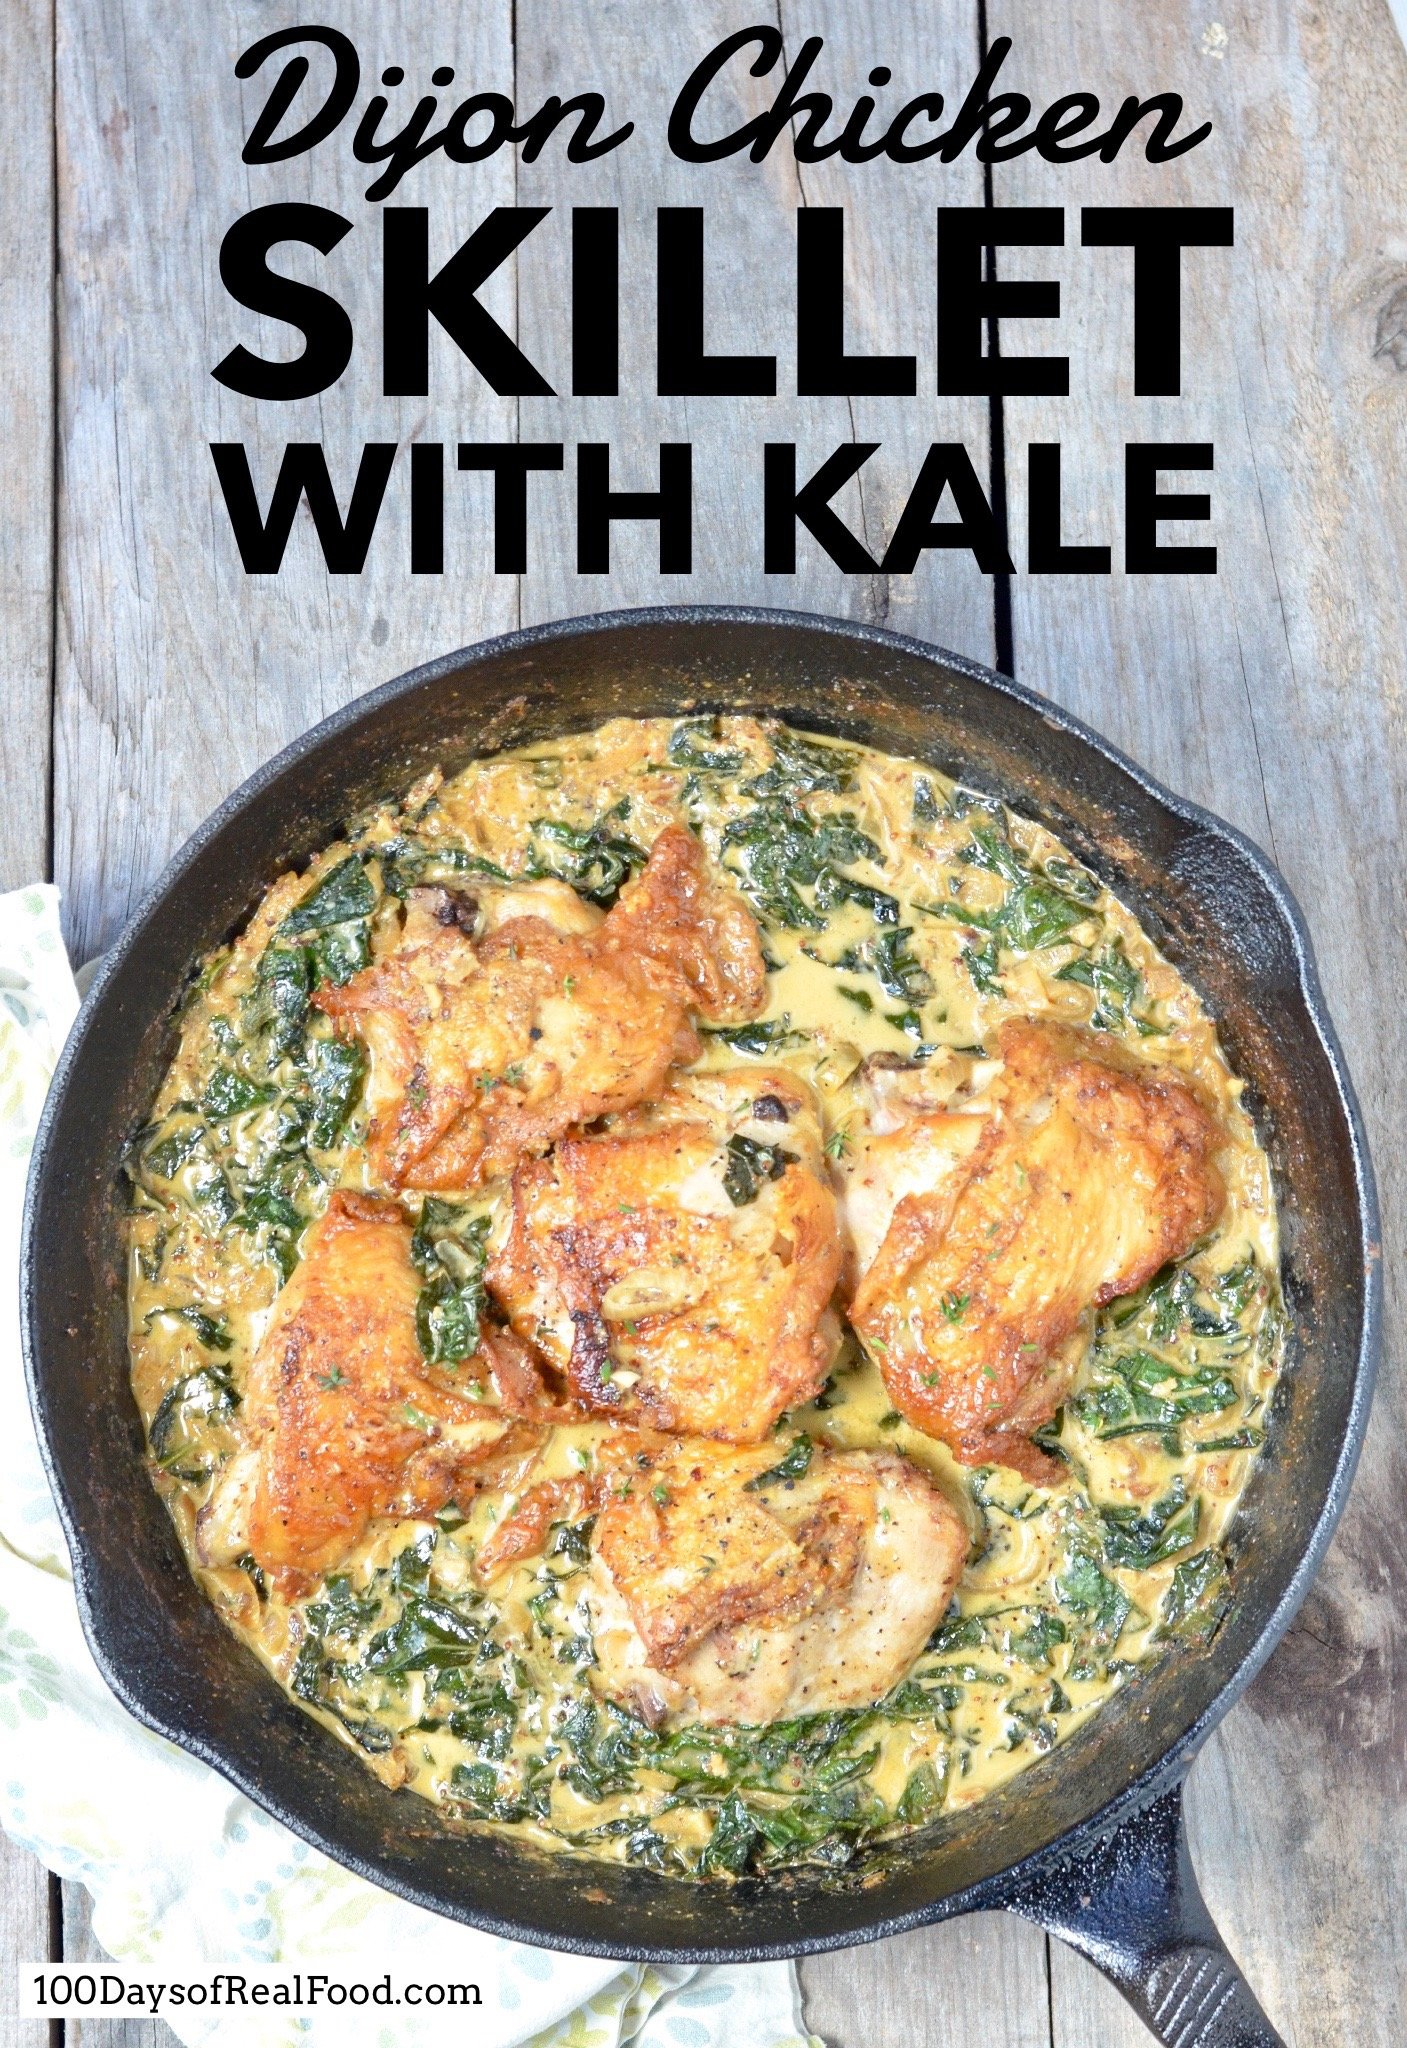 Dijon Chicken Skillet with Kale in cast iron skillet on table